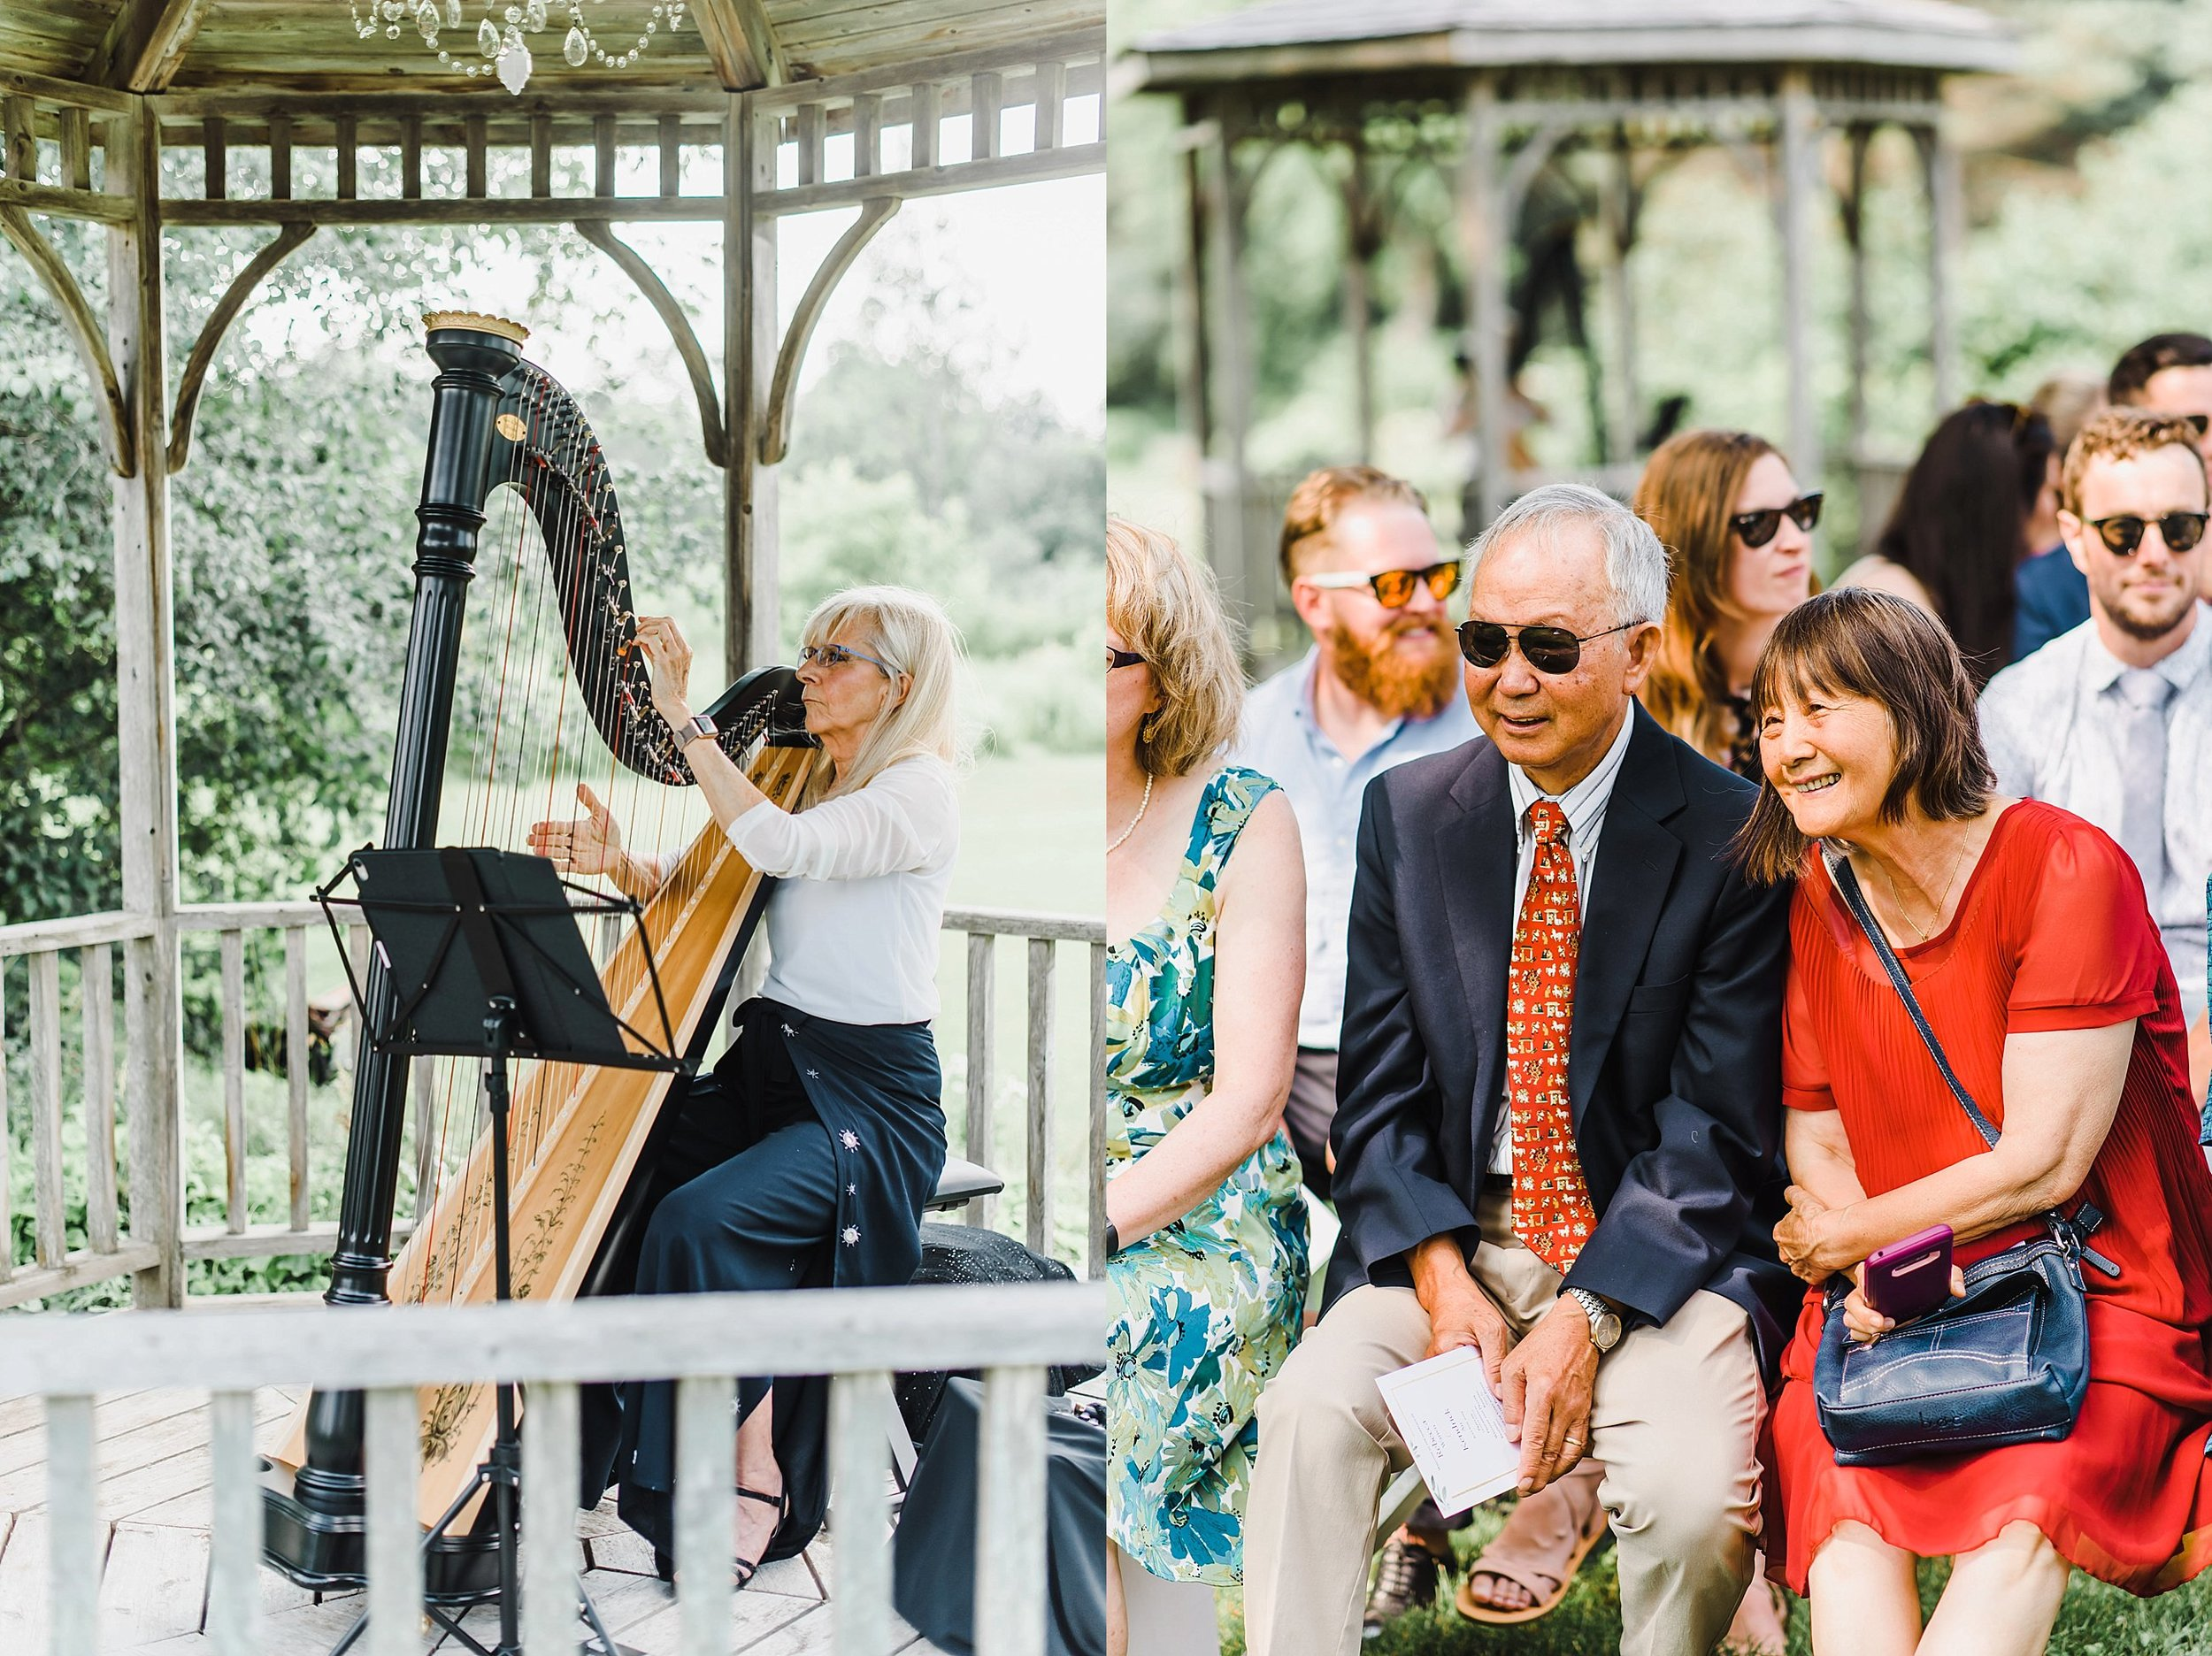 Becca's best friend's mother played the harp as the guests made their way to the ceremony space. The ceremony space had a beautiful tree front and centre that was draped with white linen in place of an alter.